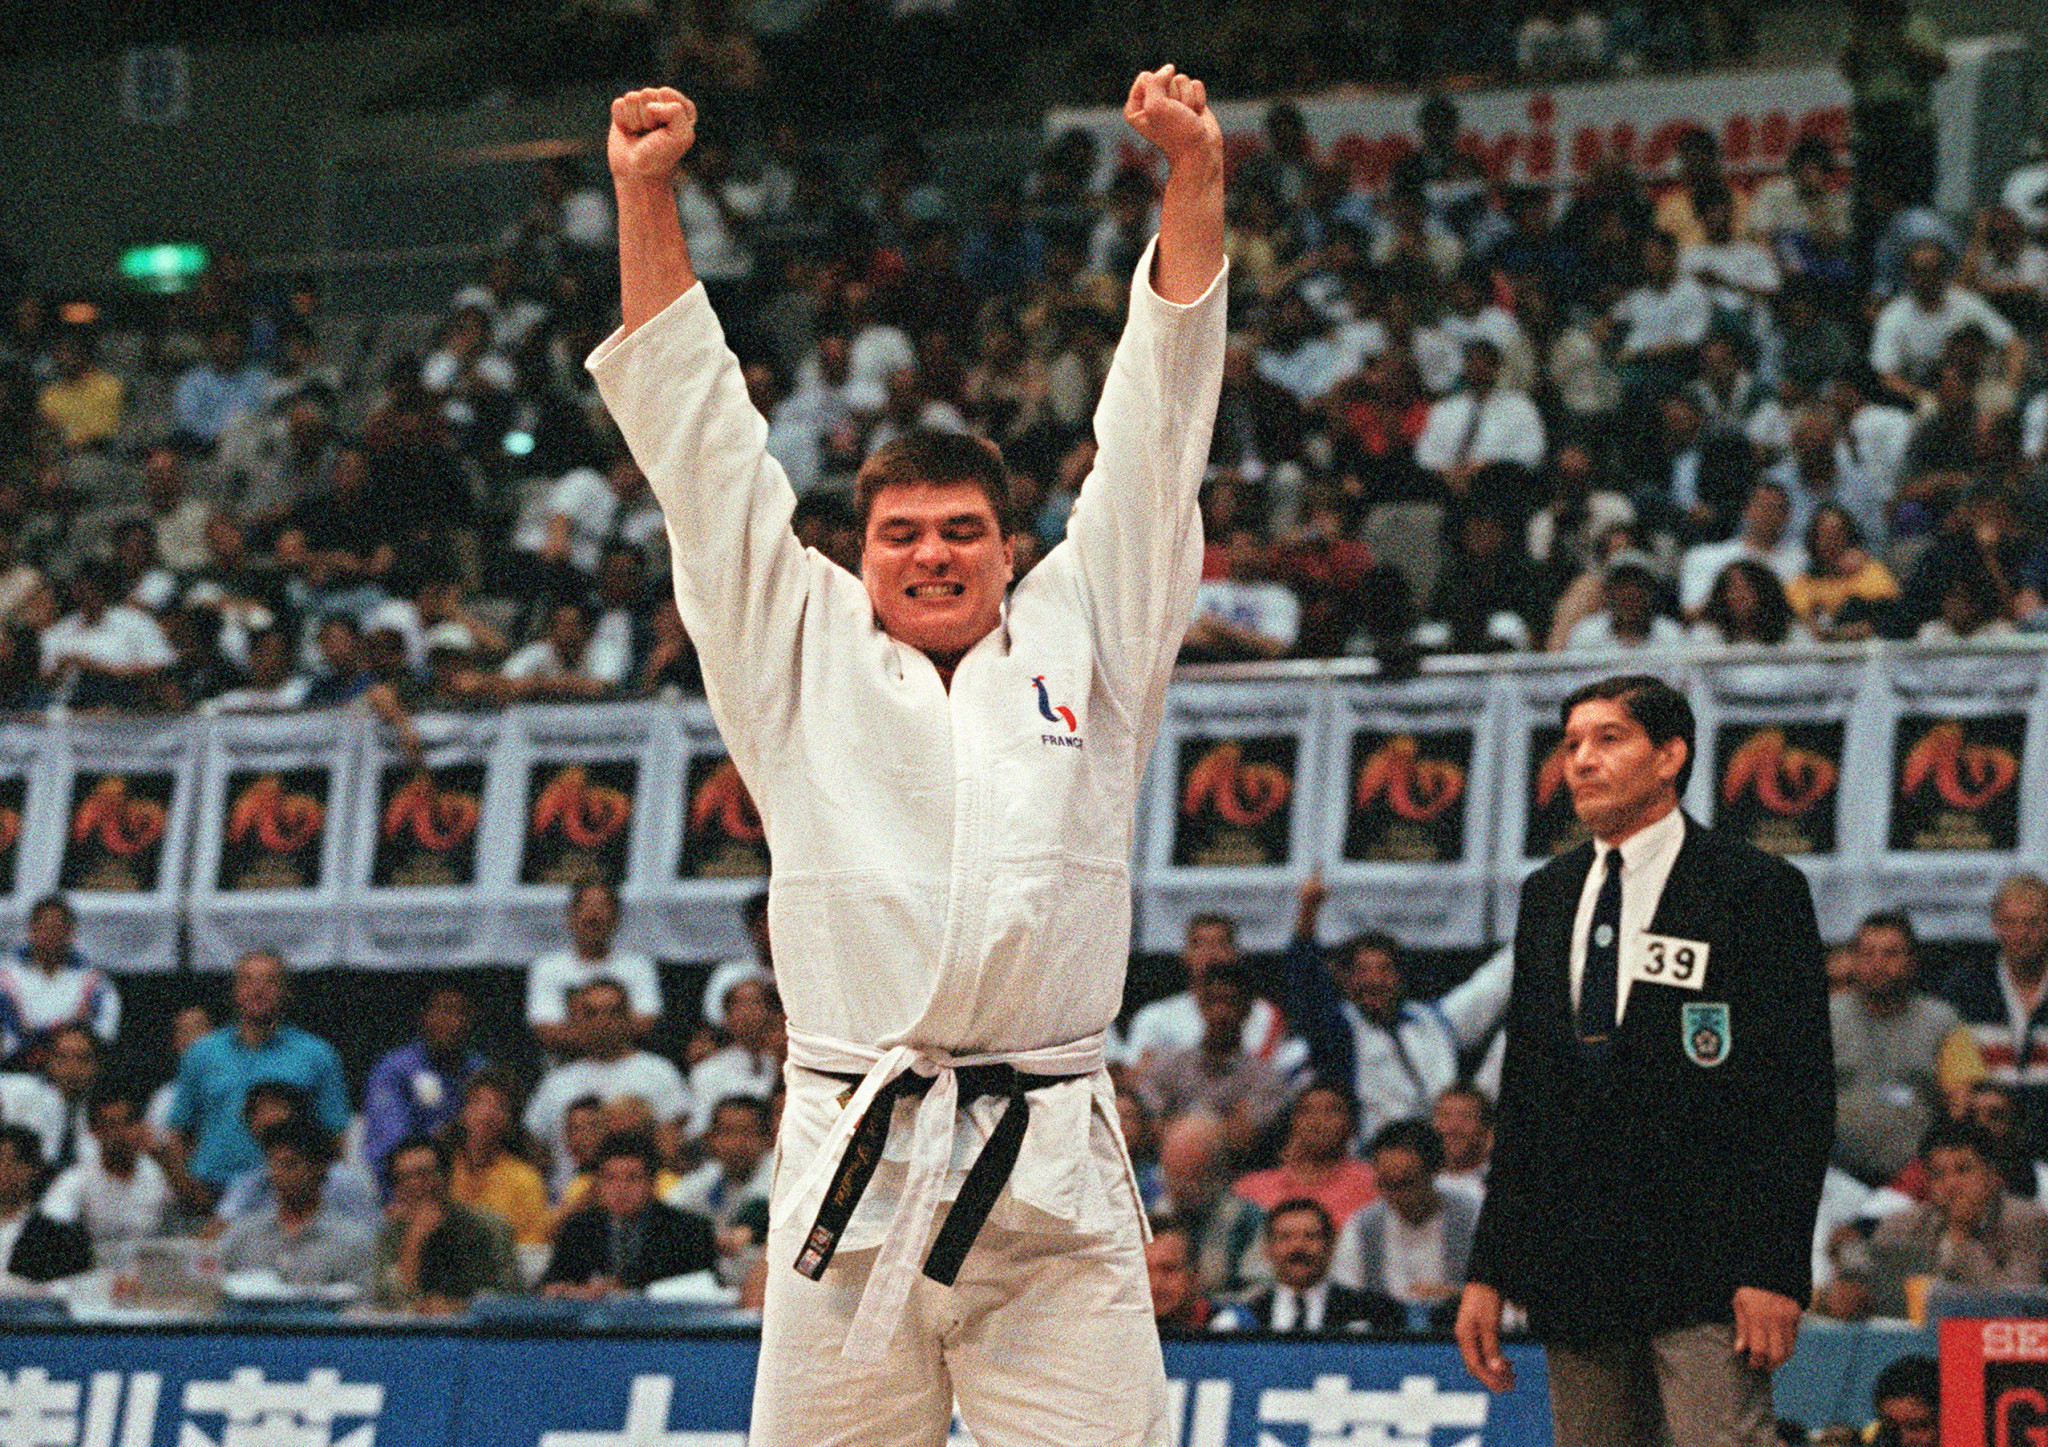 David Douillet of France raises his arms in jubilation after beating German Franck Moller during the men over 95 Kg final of the World Judo Championships in Chiba 28 September 1995 ©Getty Images